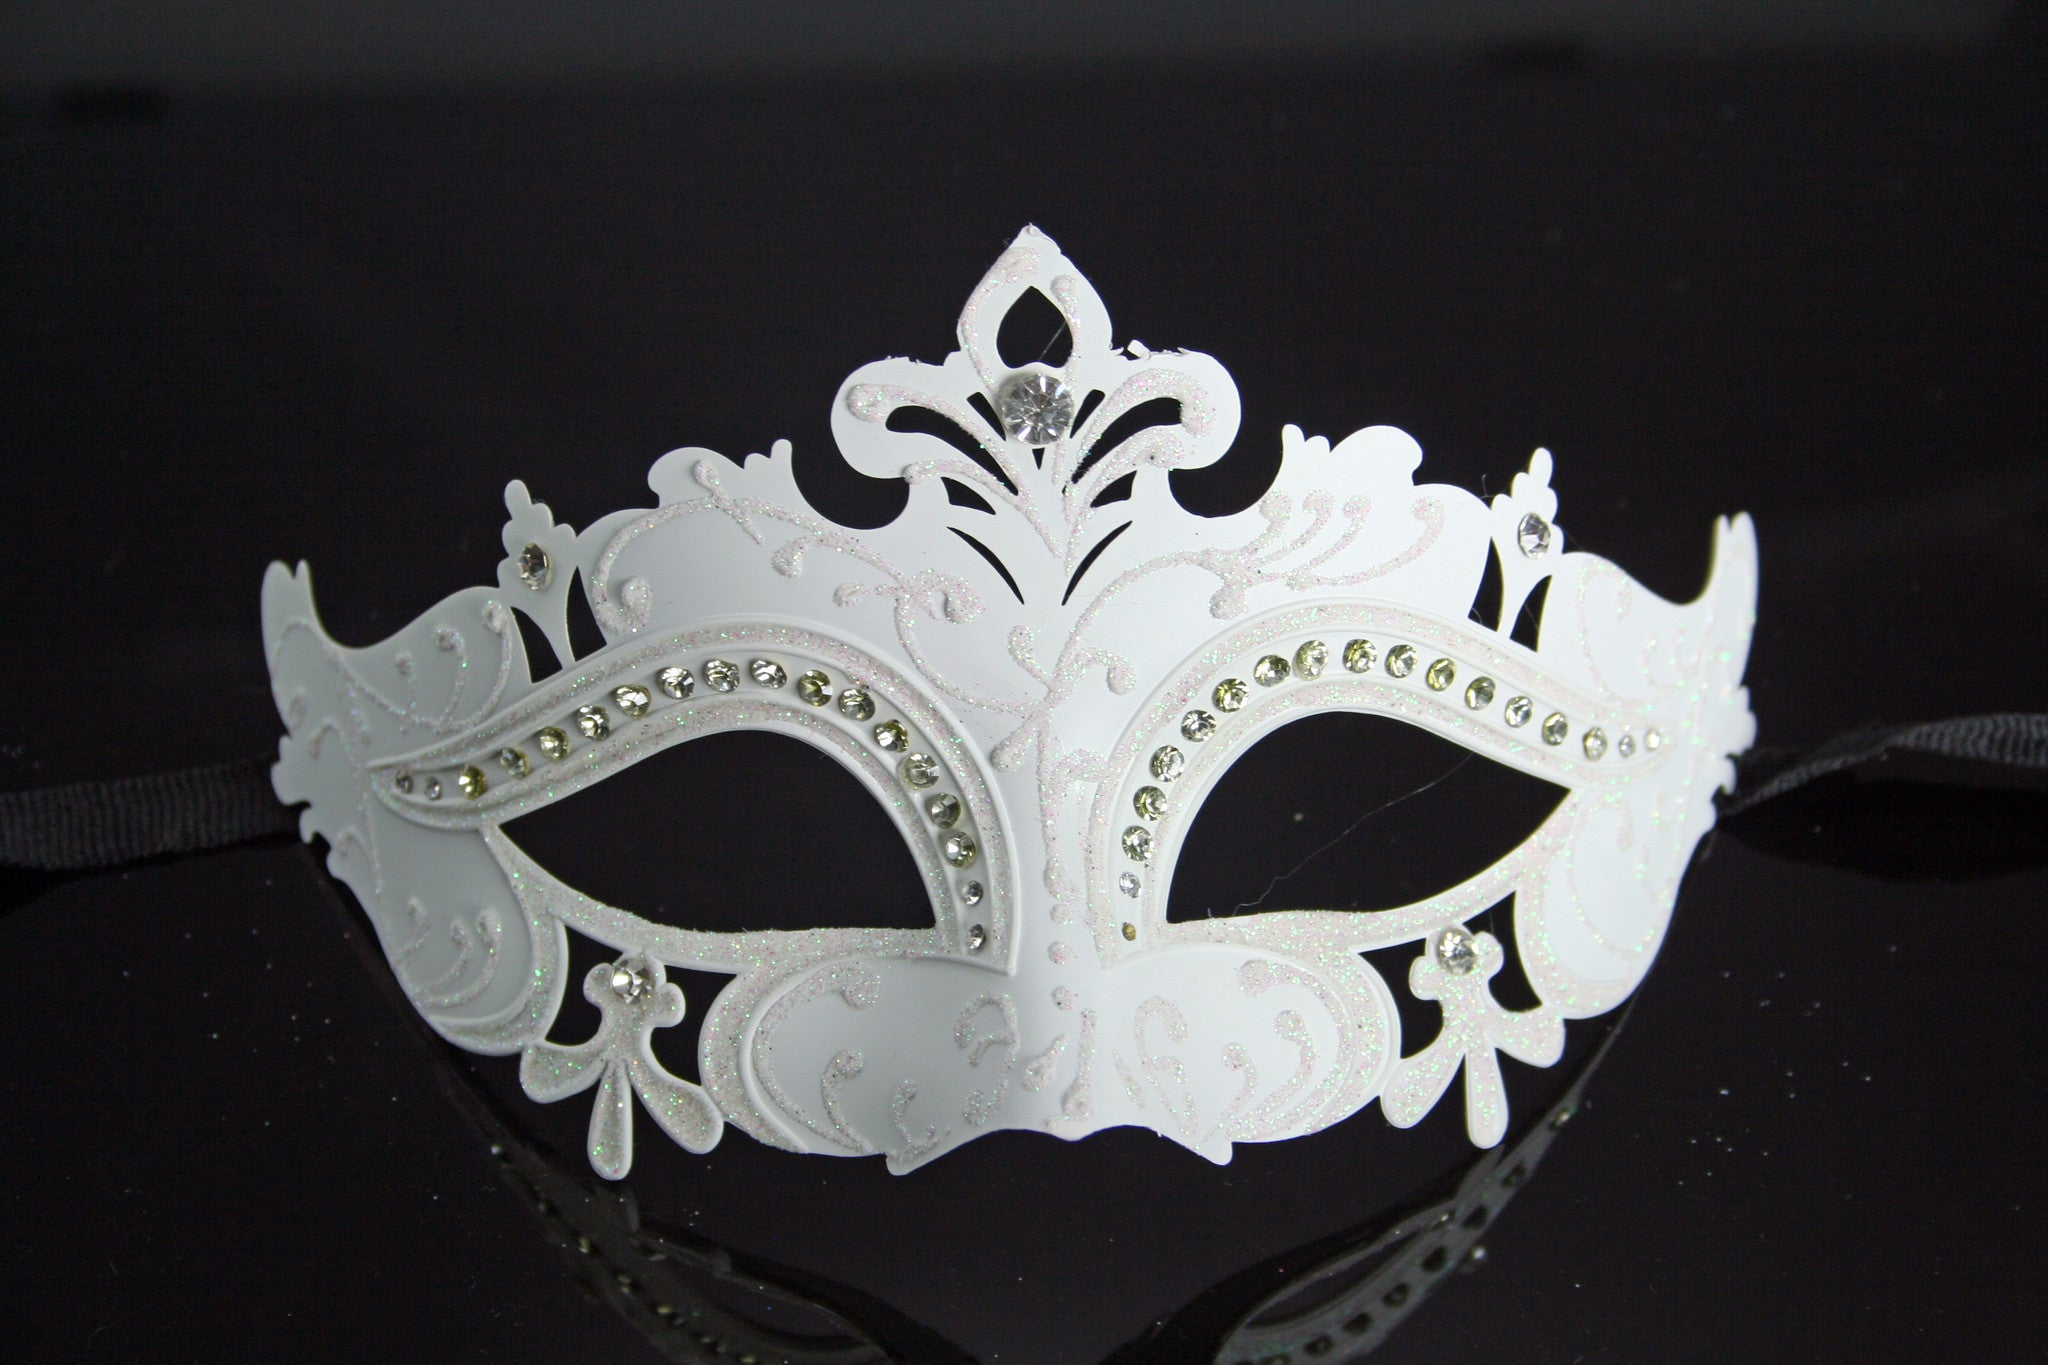 MK55A - White mask with Diamantes - CLEARANCE HALF PRICE OFF ORIGINAL PRICE BELOW